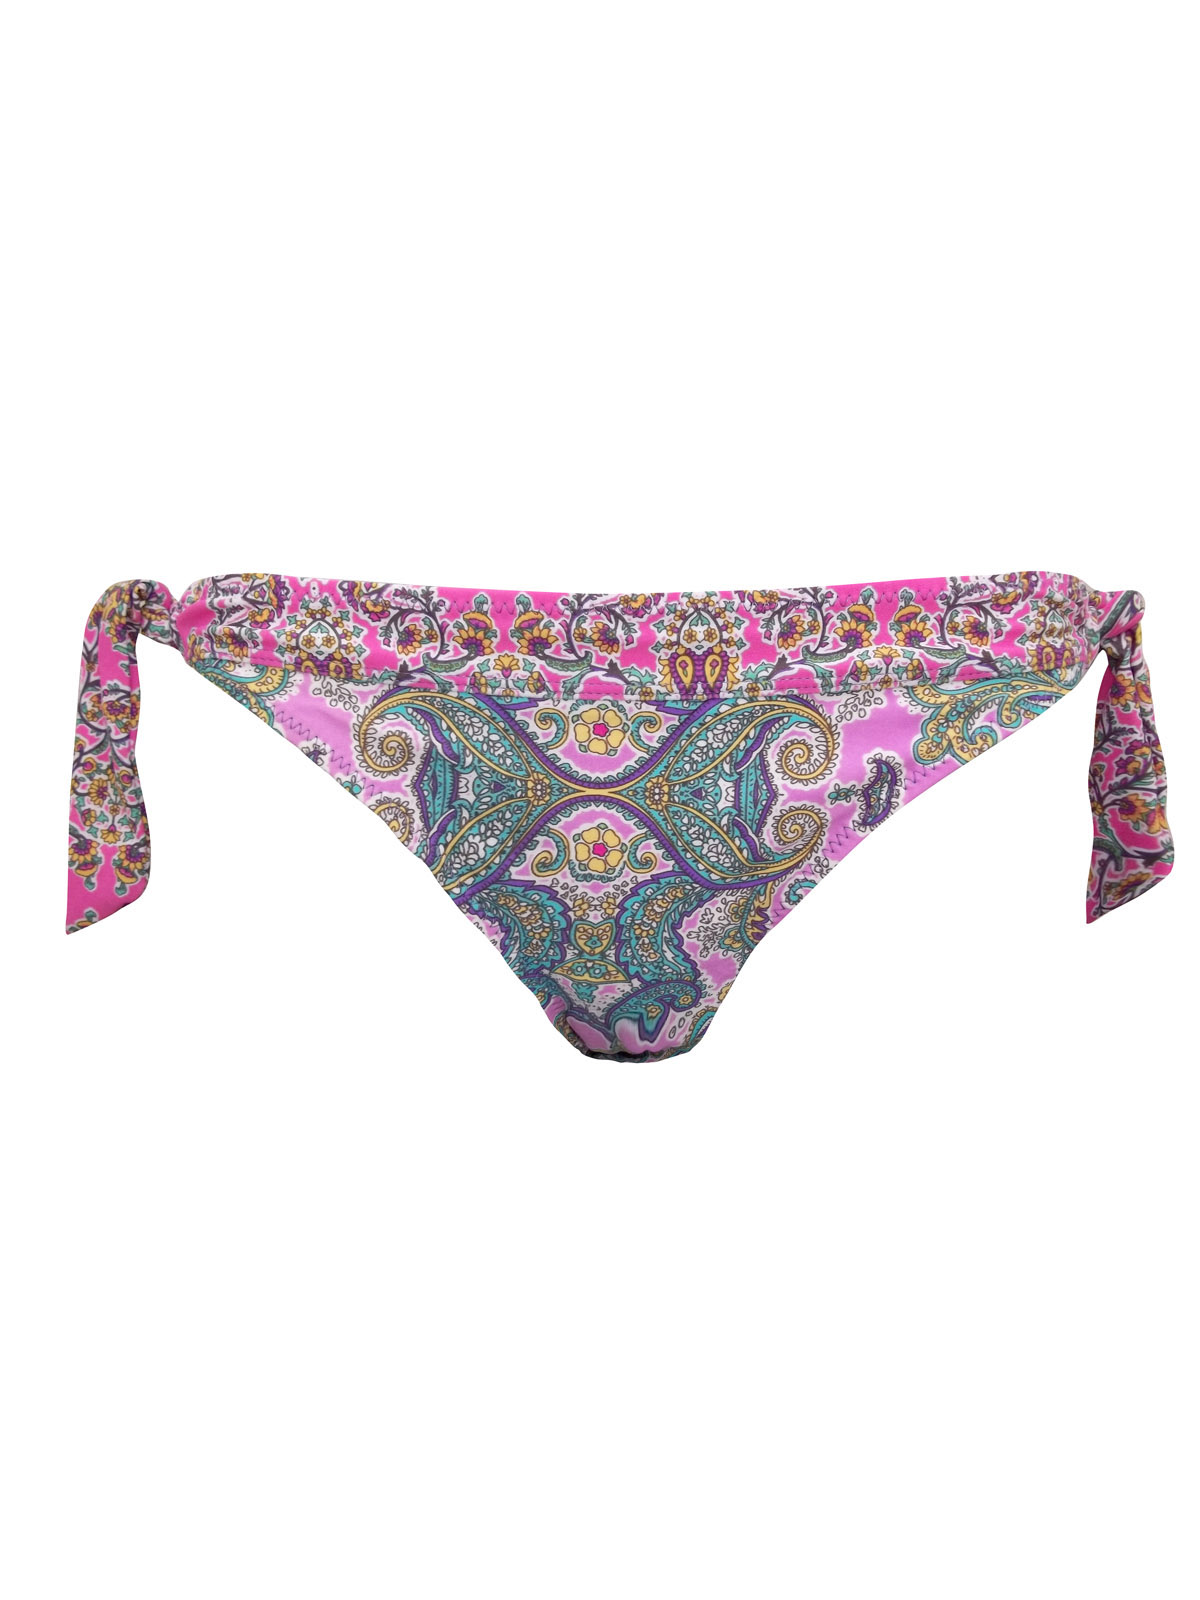 M0NS00N Accessor1ze PINK Paisley Print Tie Side Bikini Bottoms - Size 12 to 18